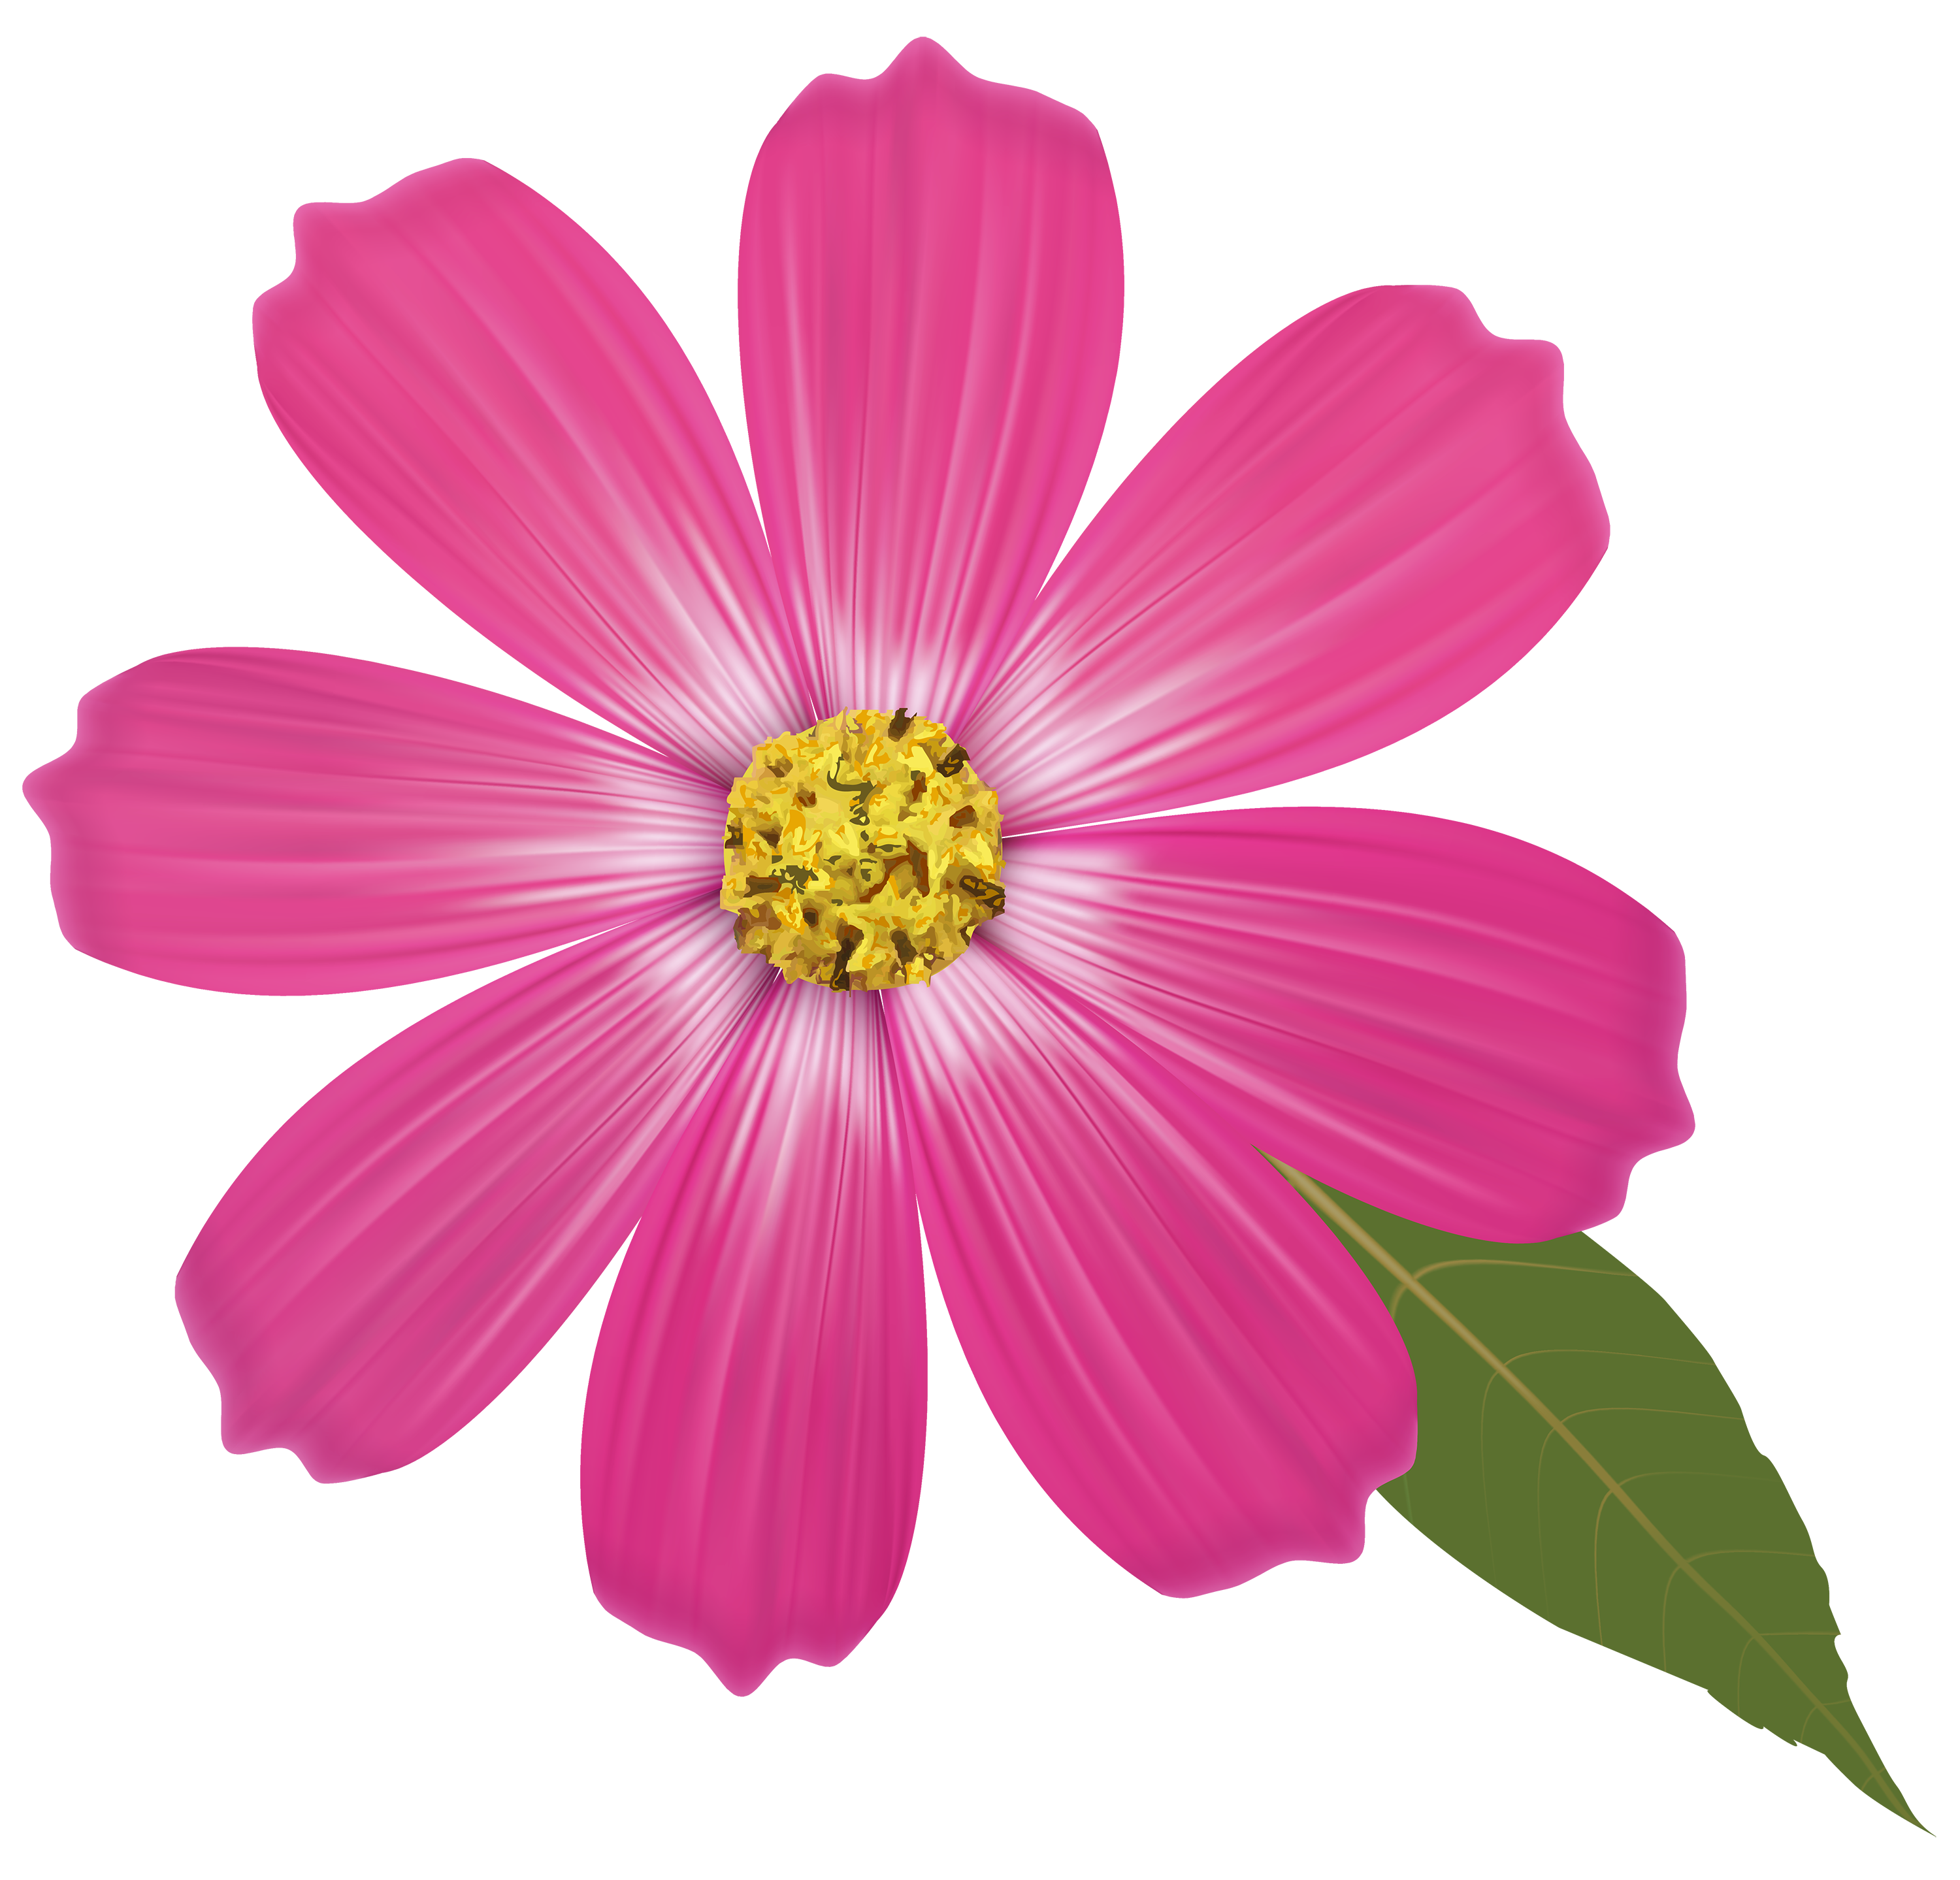 Pink flower png.